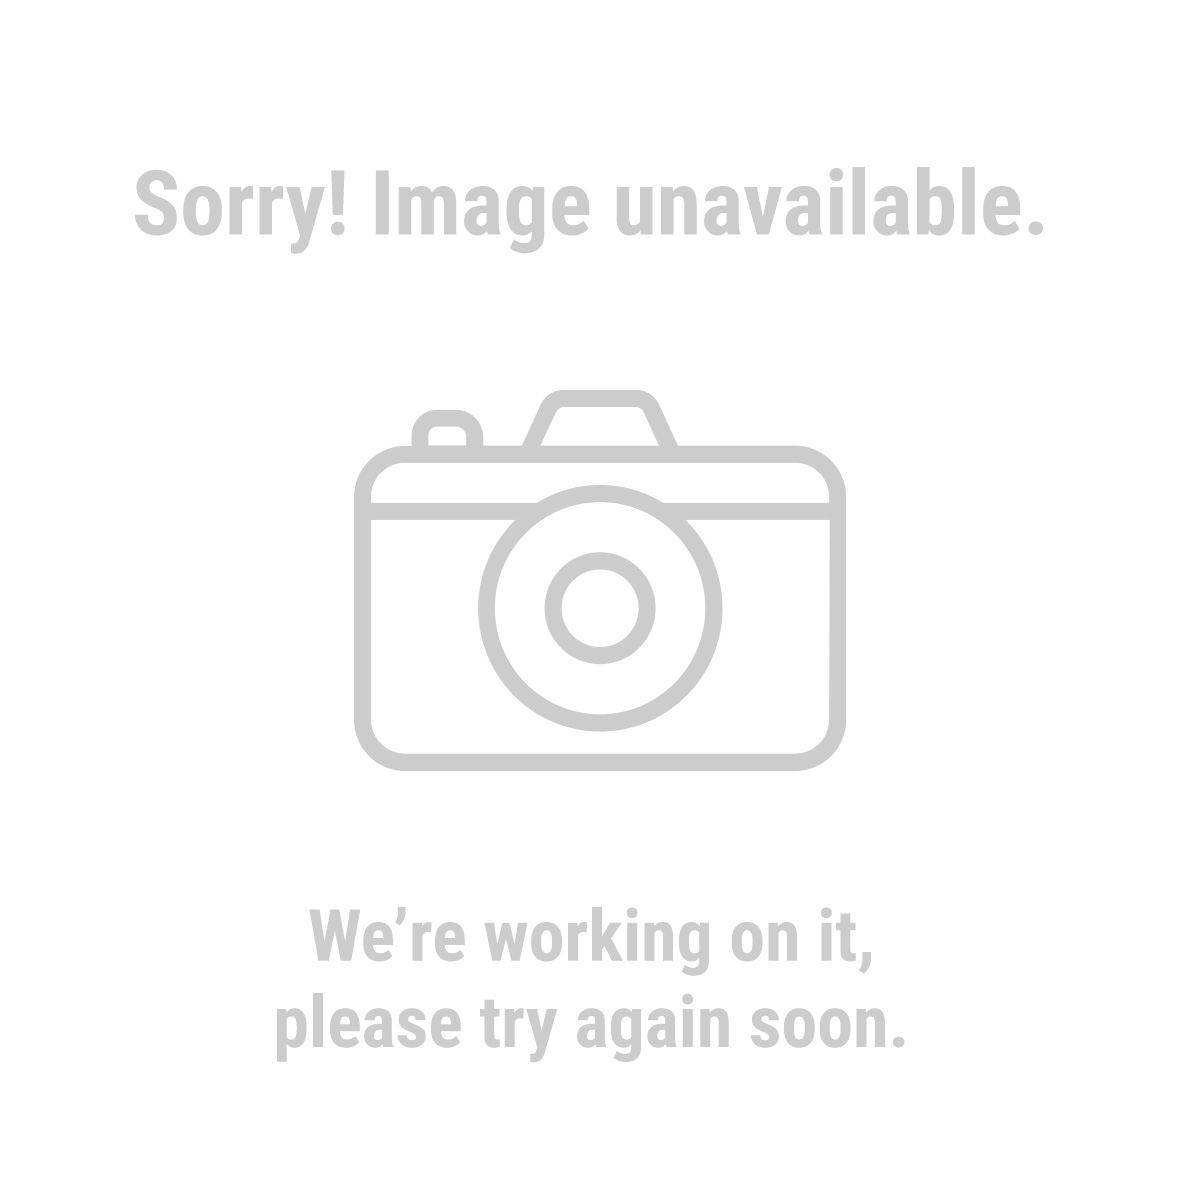 One Stop Gardens 97439 6 Ft. x 6 Ft. Greenhouse